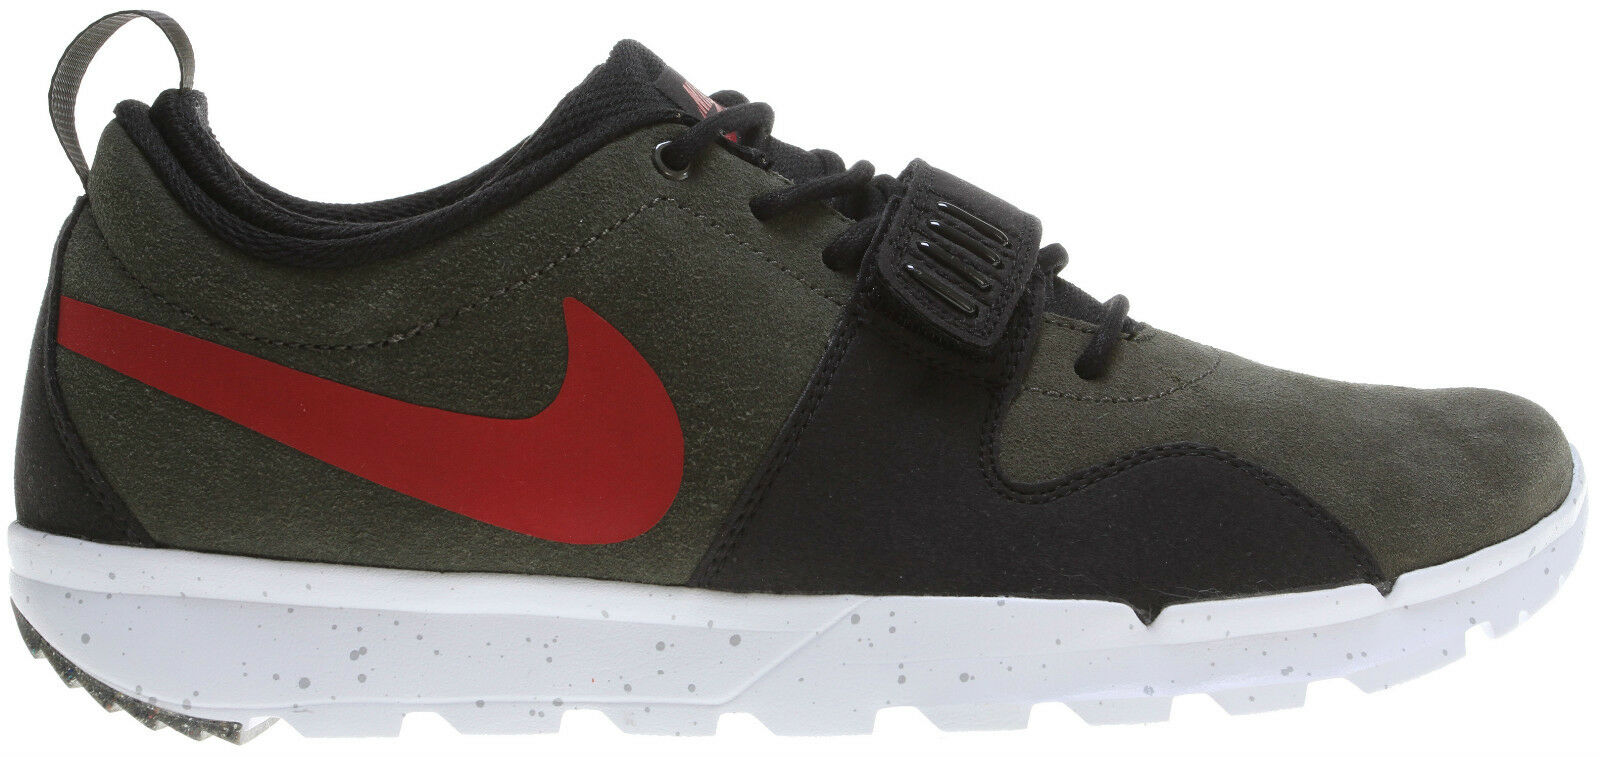 Nike Trainerendor 90 93 95 110 Box with New 47.5) (EUR 12